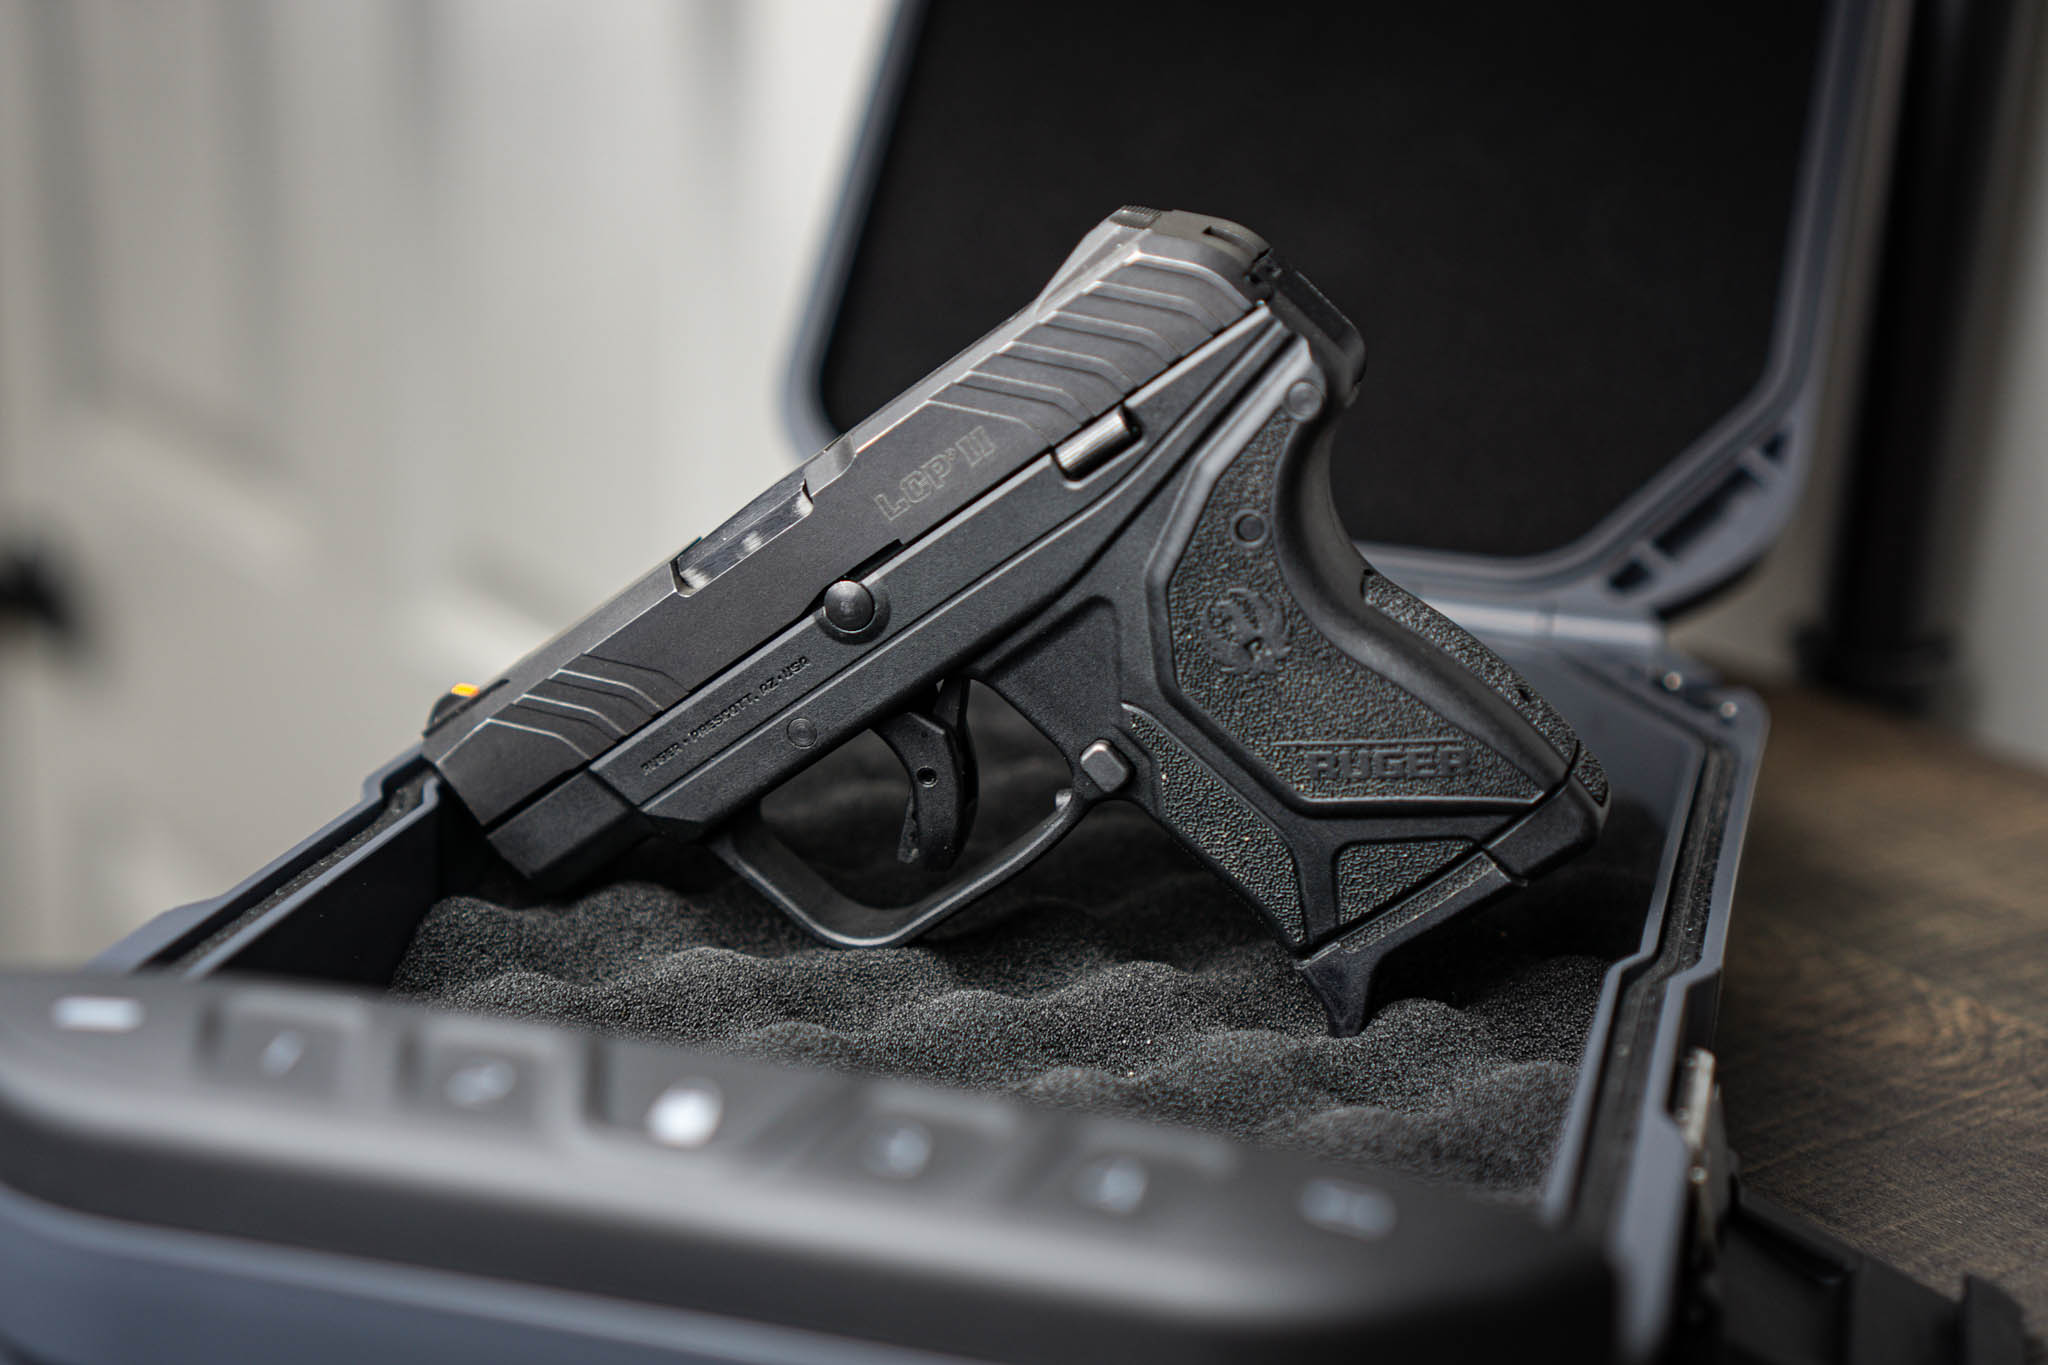 Ruger LCP II Shown